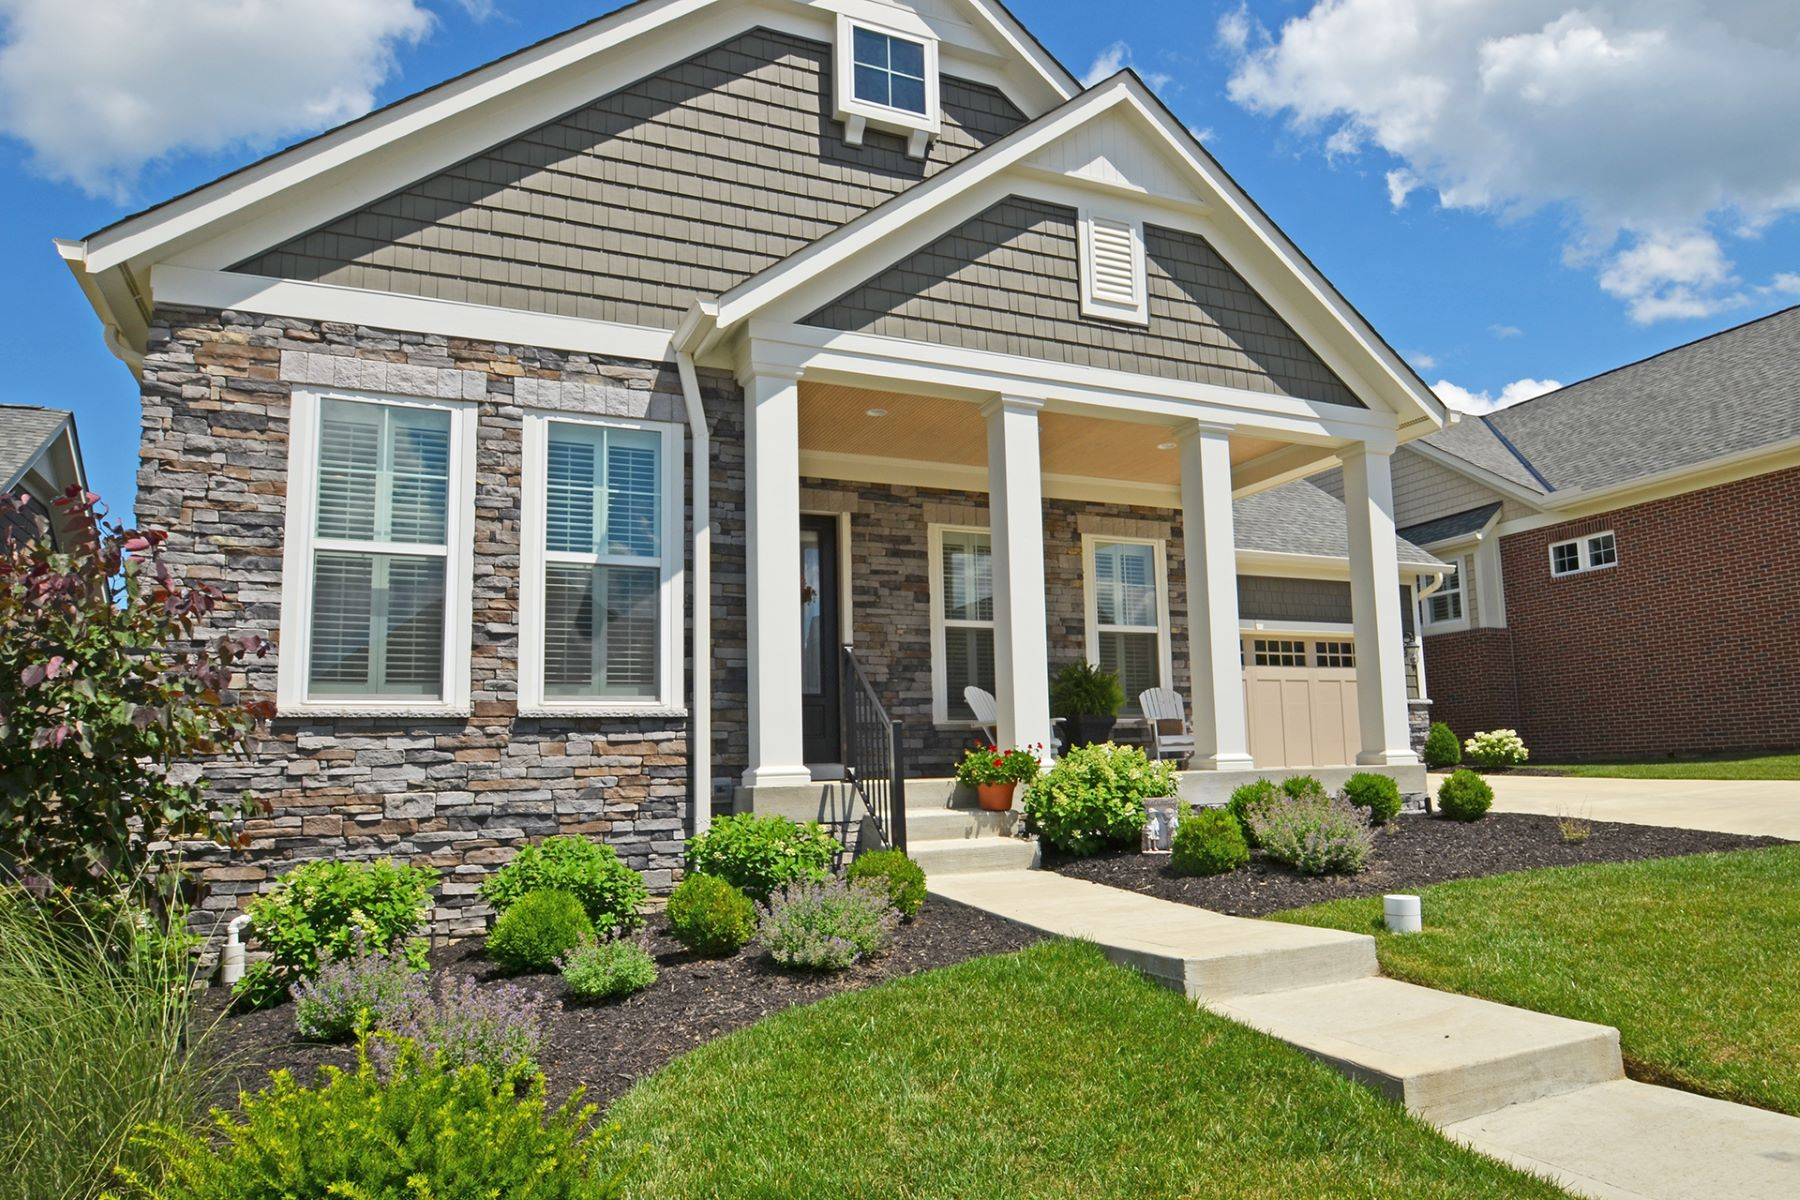 Single Family Homes for Sale at NO NEED TO BUILD! Built in 2016, Summerhill Model Available NOW! 10518 Sundance Ct. Blue Ash, Ohio 45241 United States